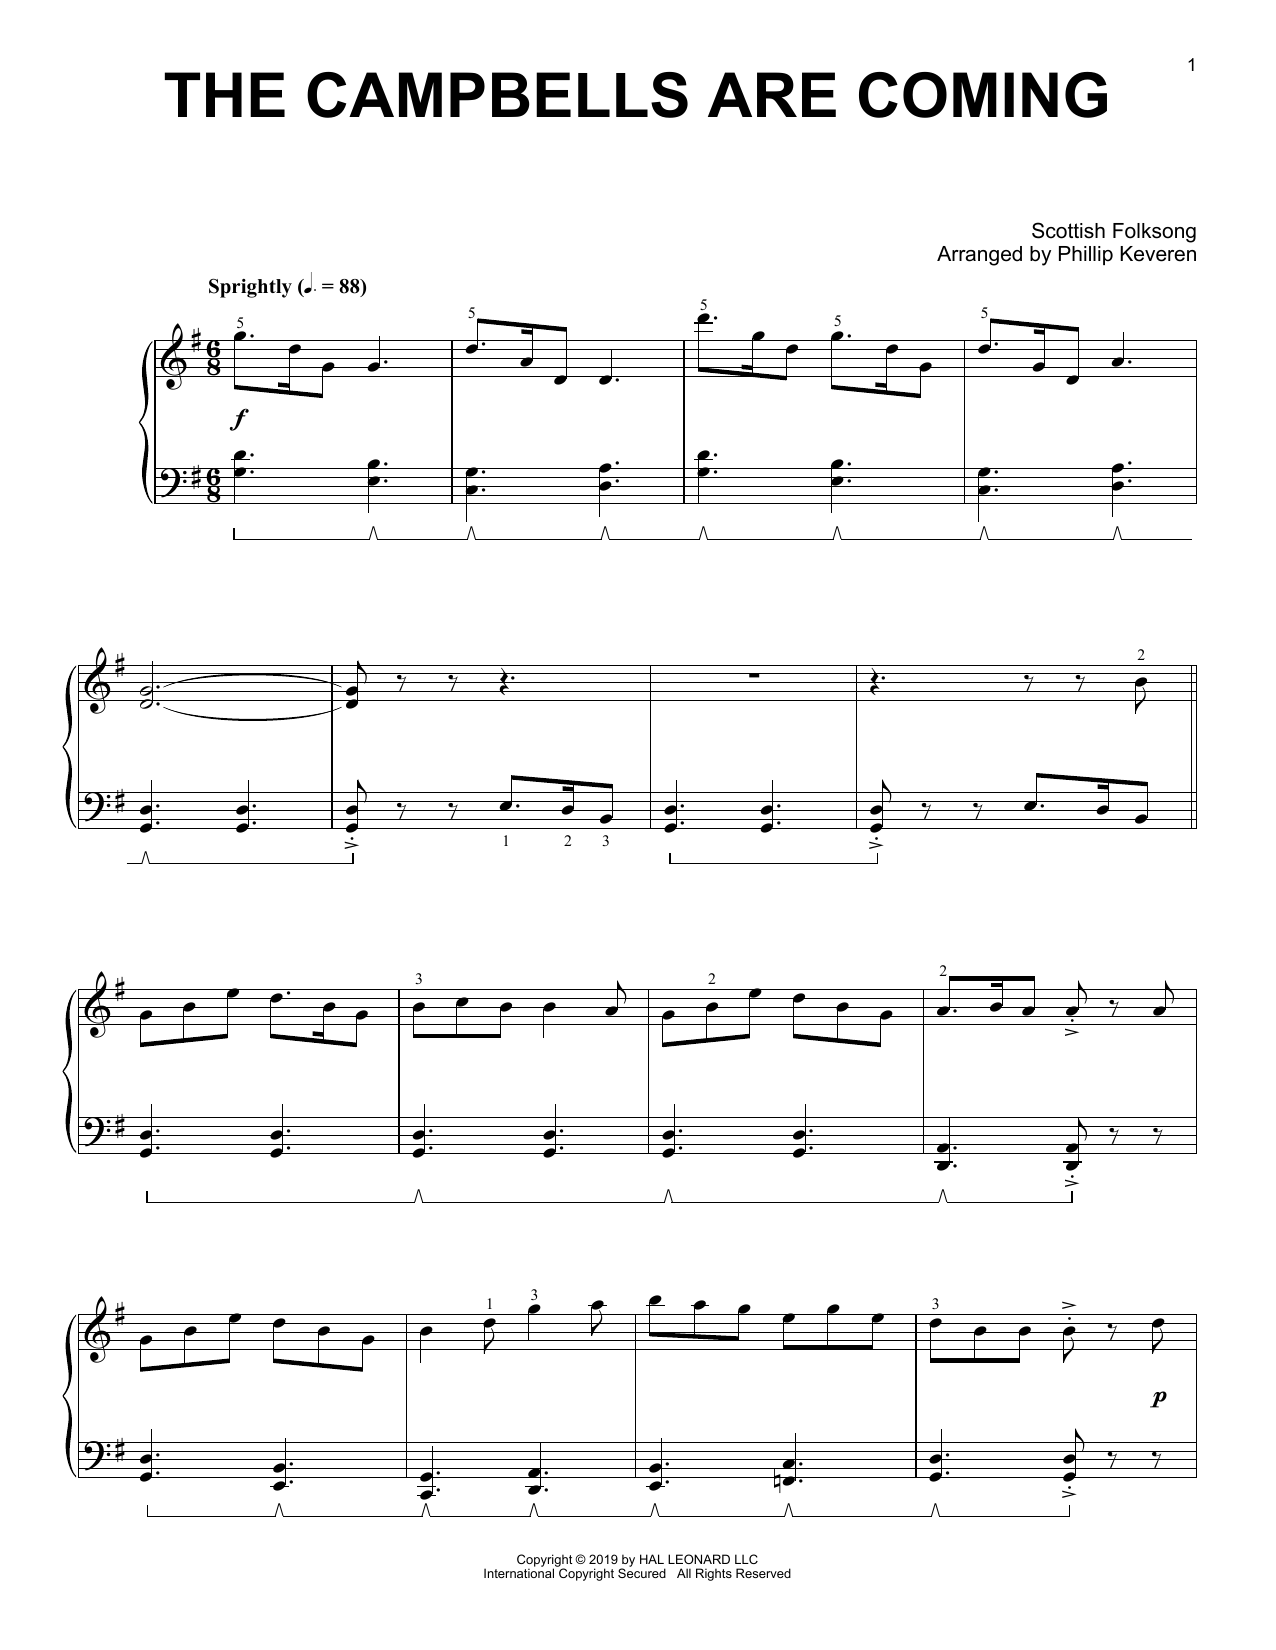 Scottish Folksong The Campbells Are Coming (arr. Phillip Keveren) sheet music notes and chords